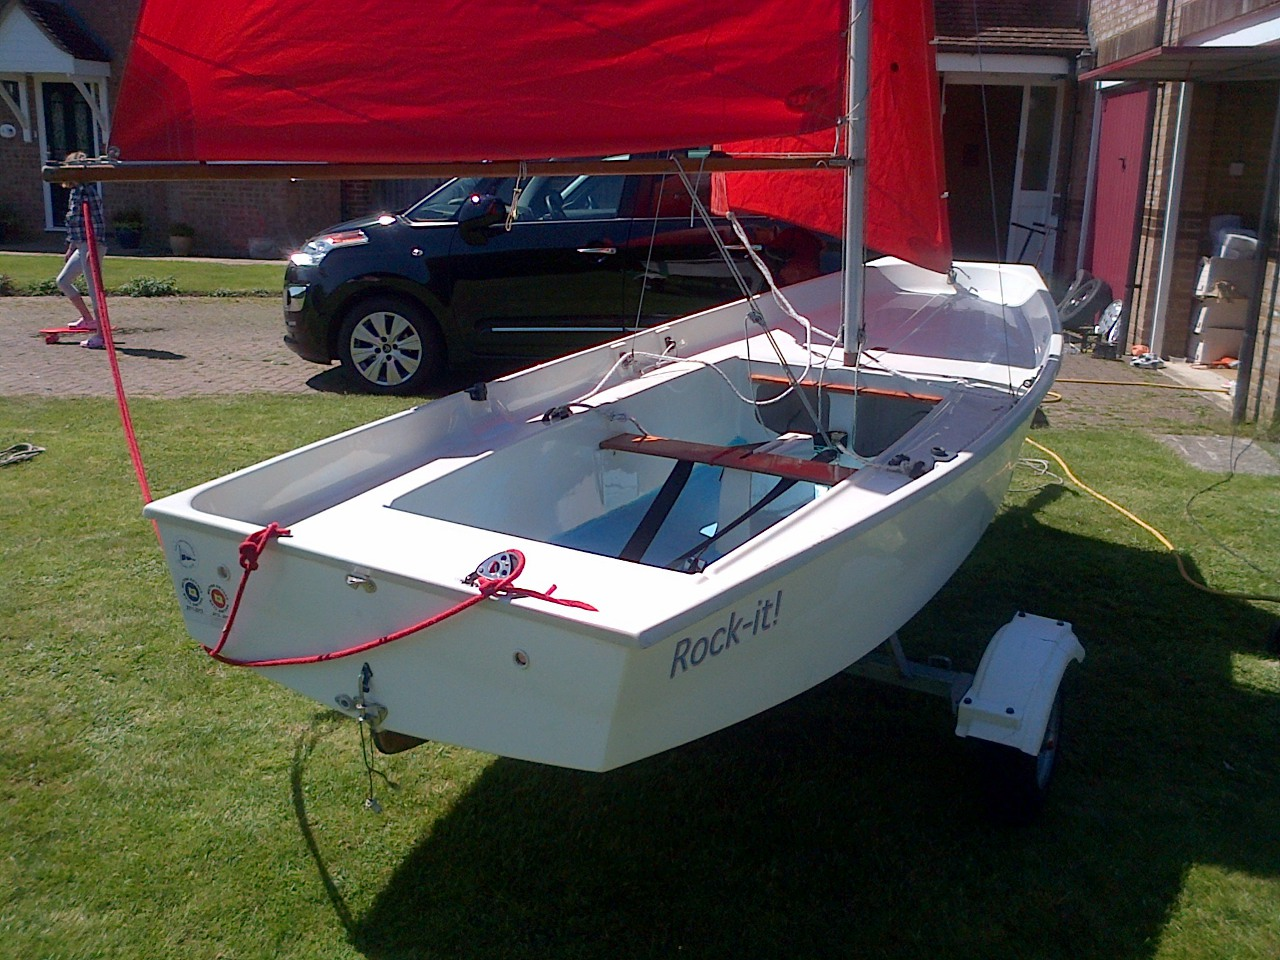 A Bell Ferranti GRP Mirror dinghy rigged up on a lawn